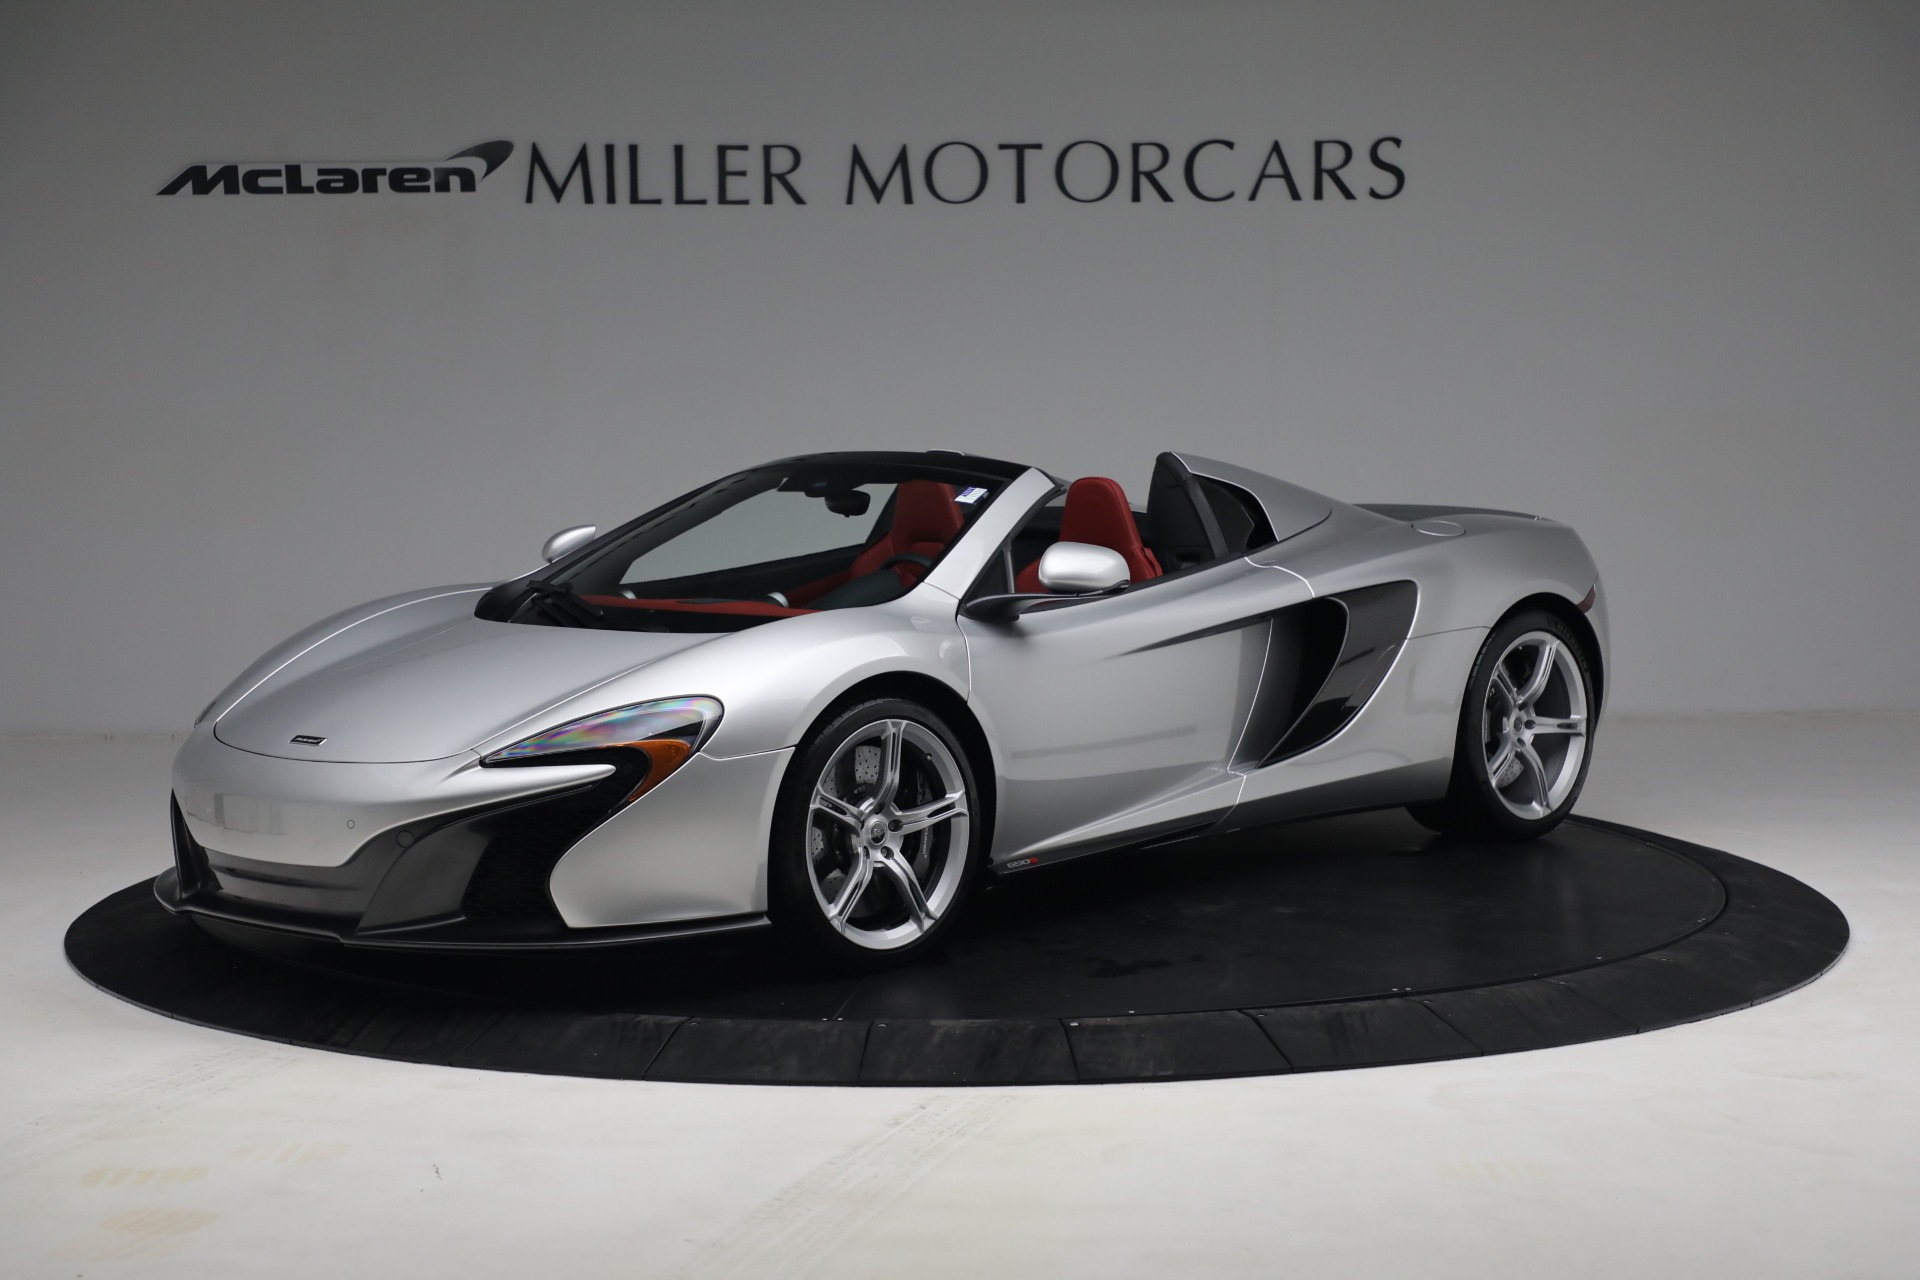 Used 2015 McLaren 650S Spider for sale $179,990 at Aston Martin of Greenwich in Greenwich CT 06830 1